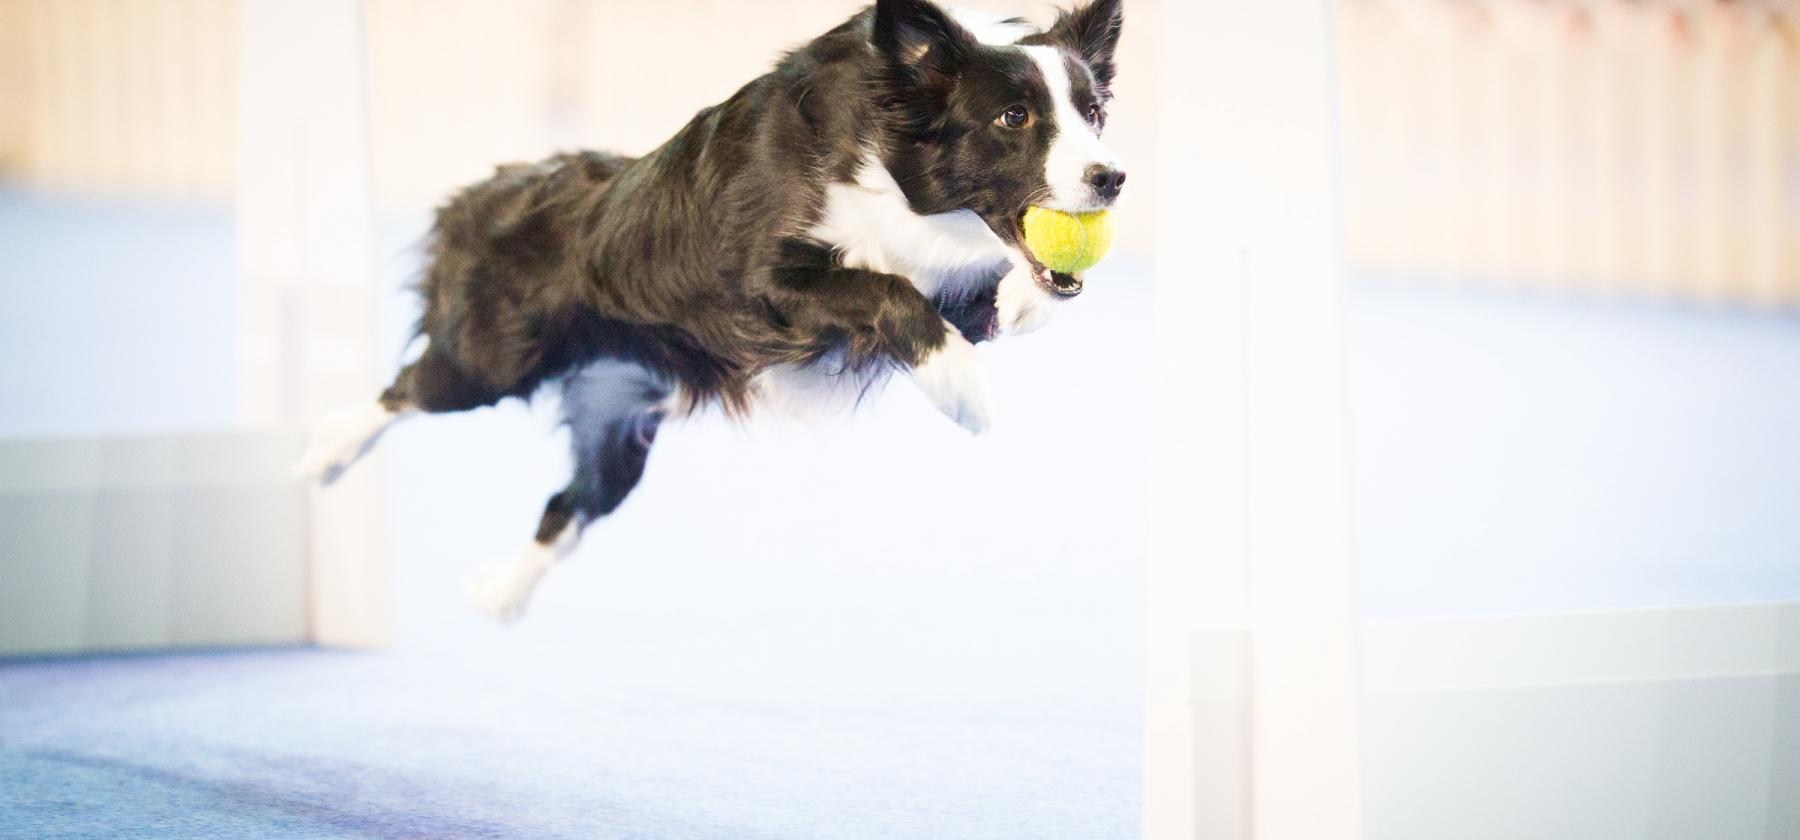 Bordercollie flyball esitys